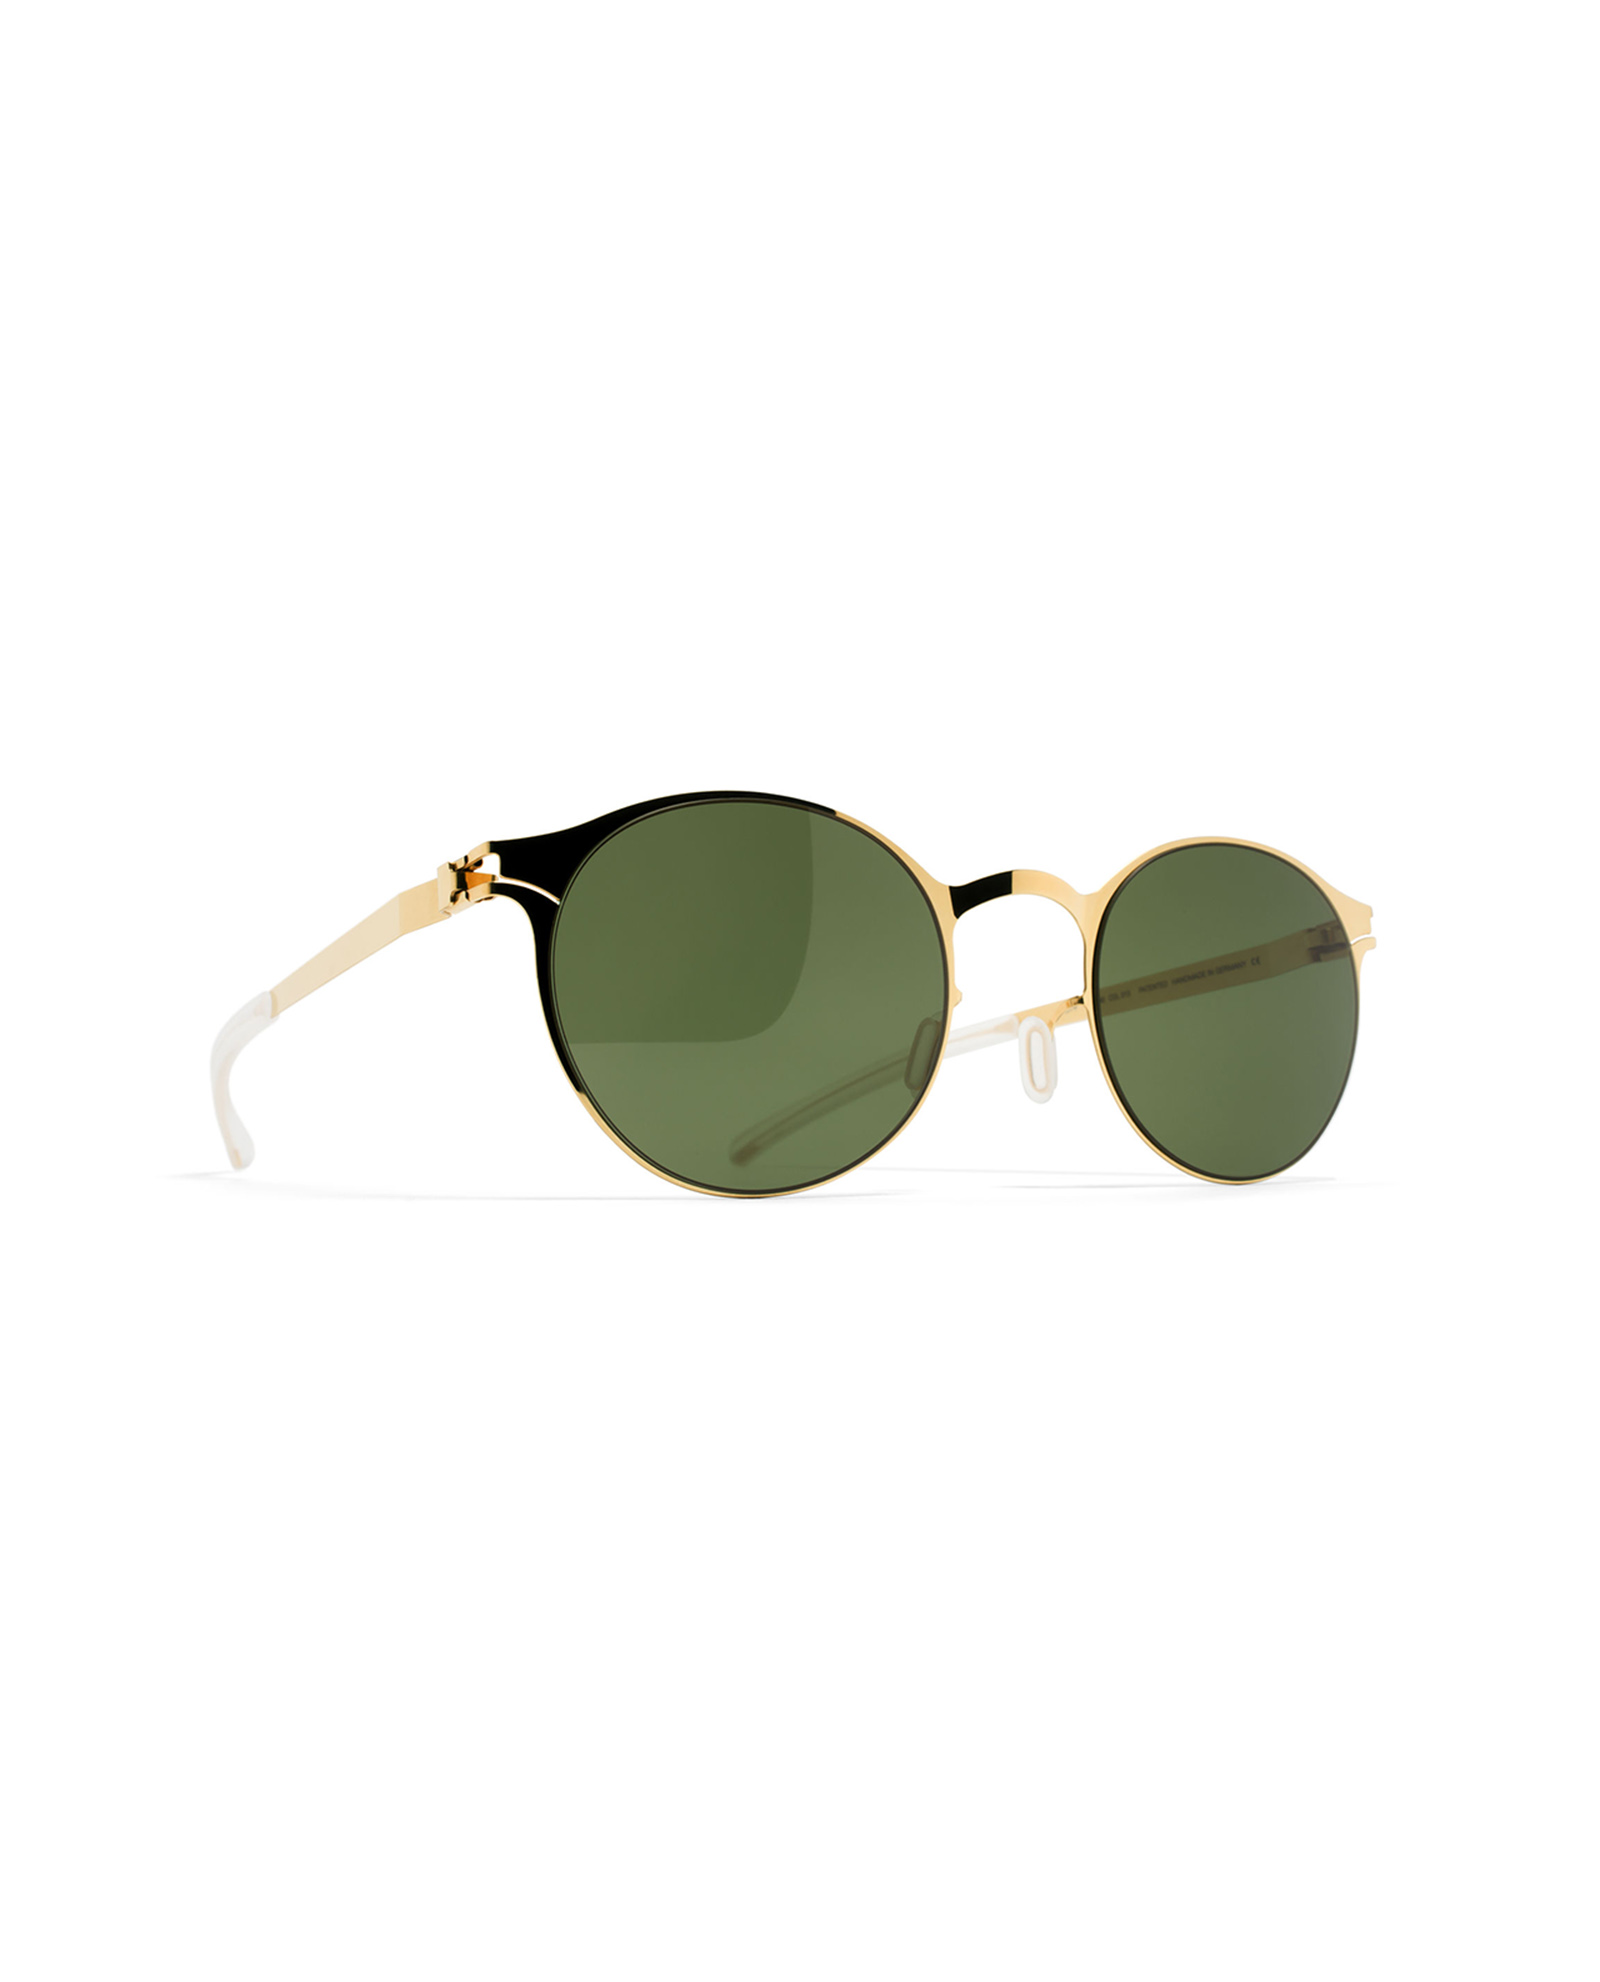 https://www.polydoruoptika.gr/wp-content/uploads/2018/01/mykita-no1-sun-junis-glossygold-my-fern-polarised-1.jpg